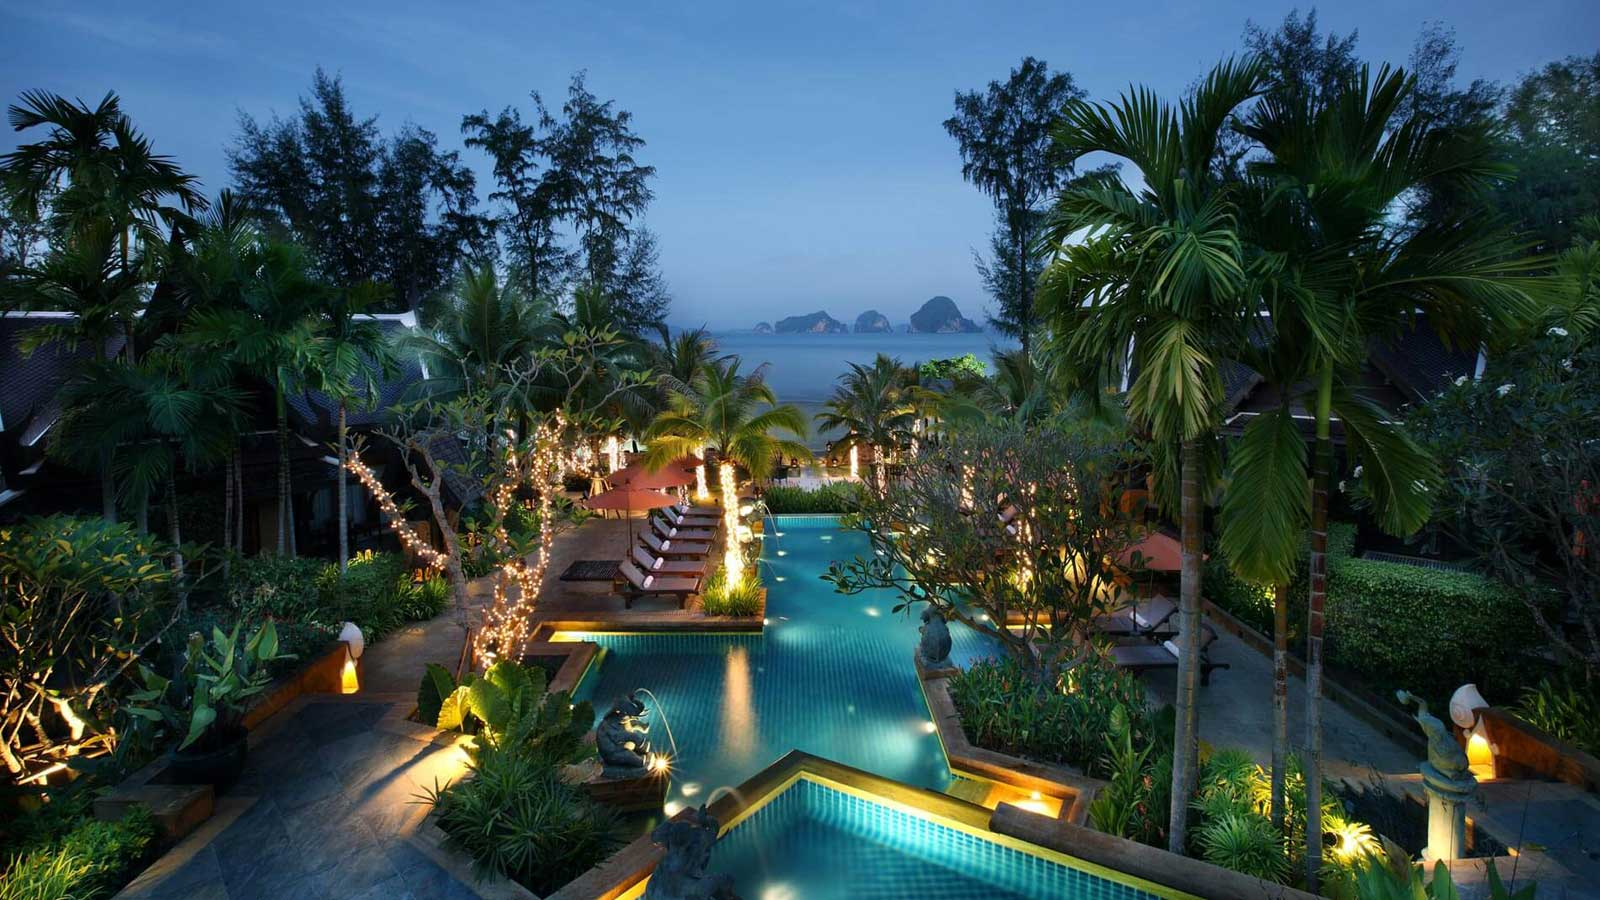 amarivogue-krabi-swimming-pool-1